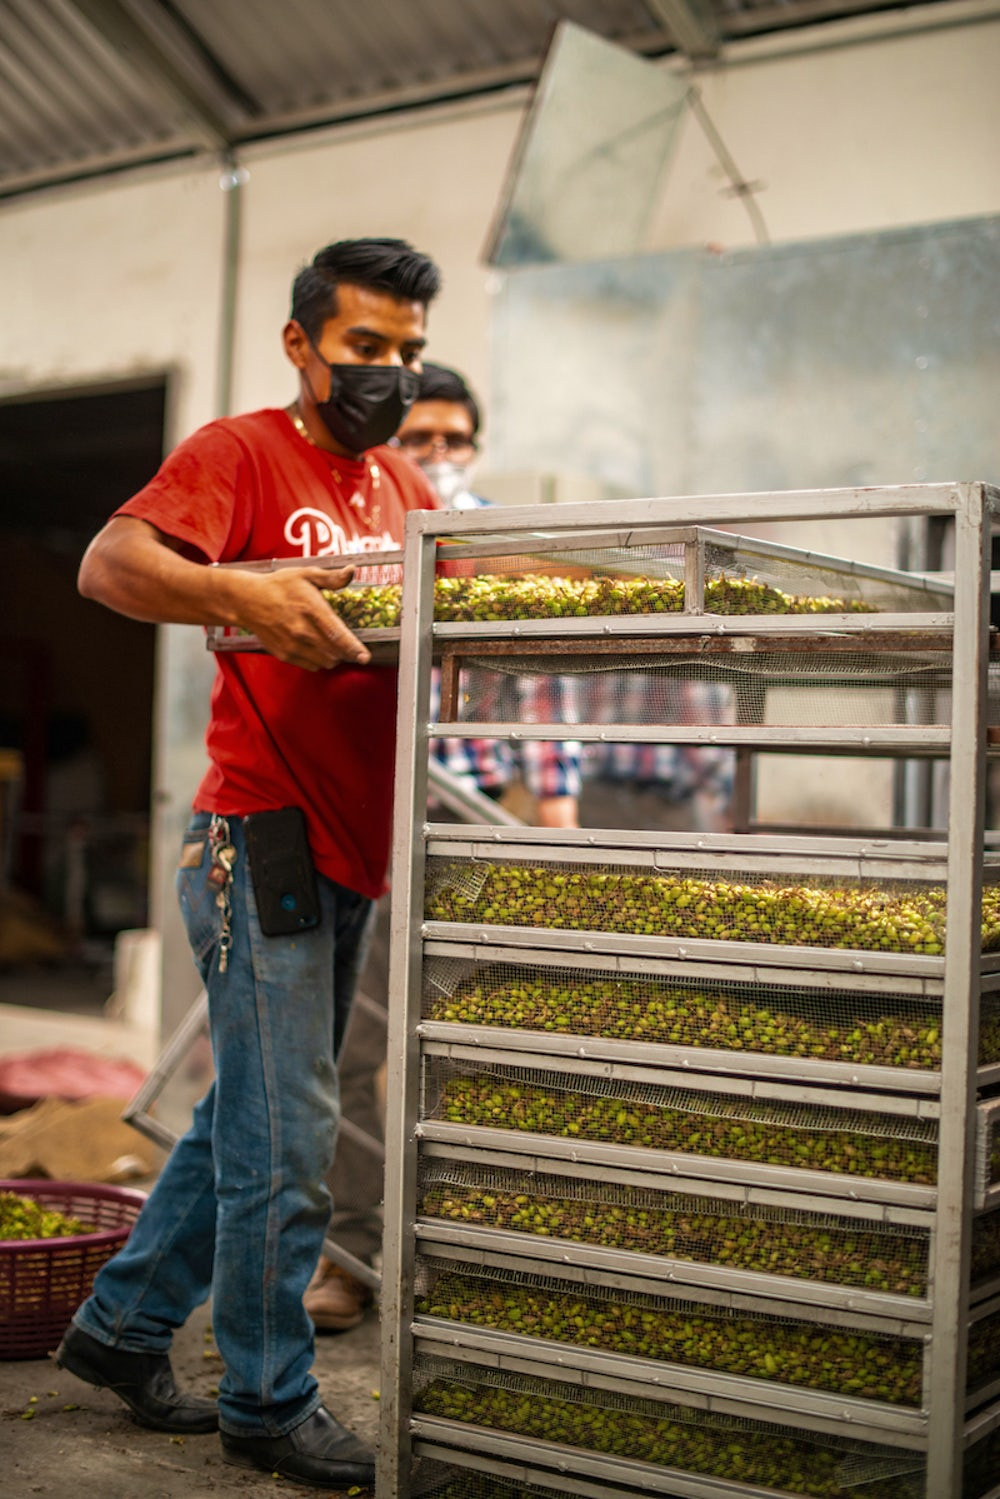 A Guatemalan man preps trays of cardamom for drying.